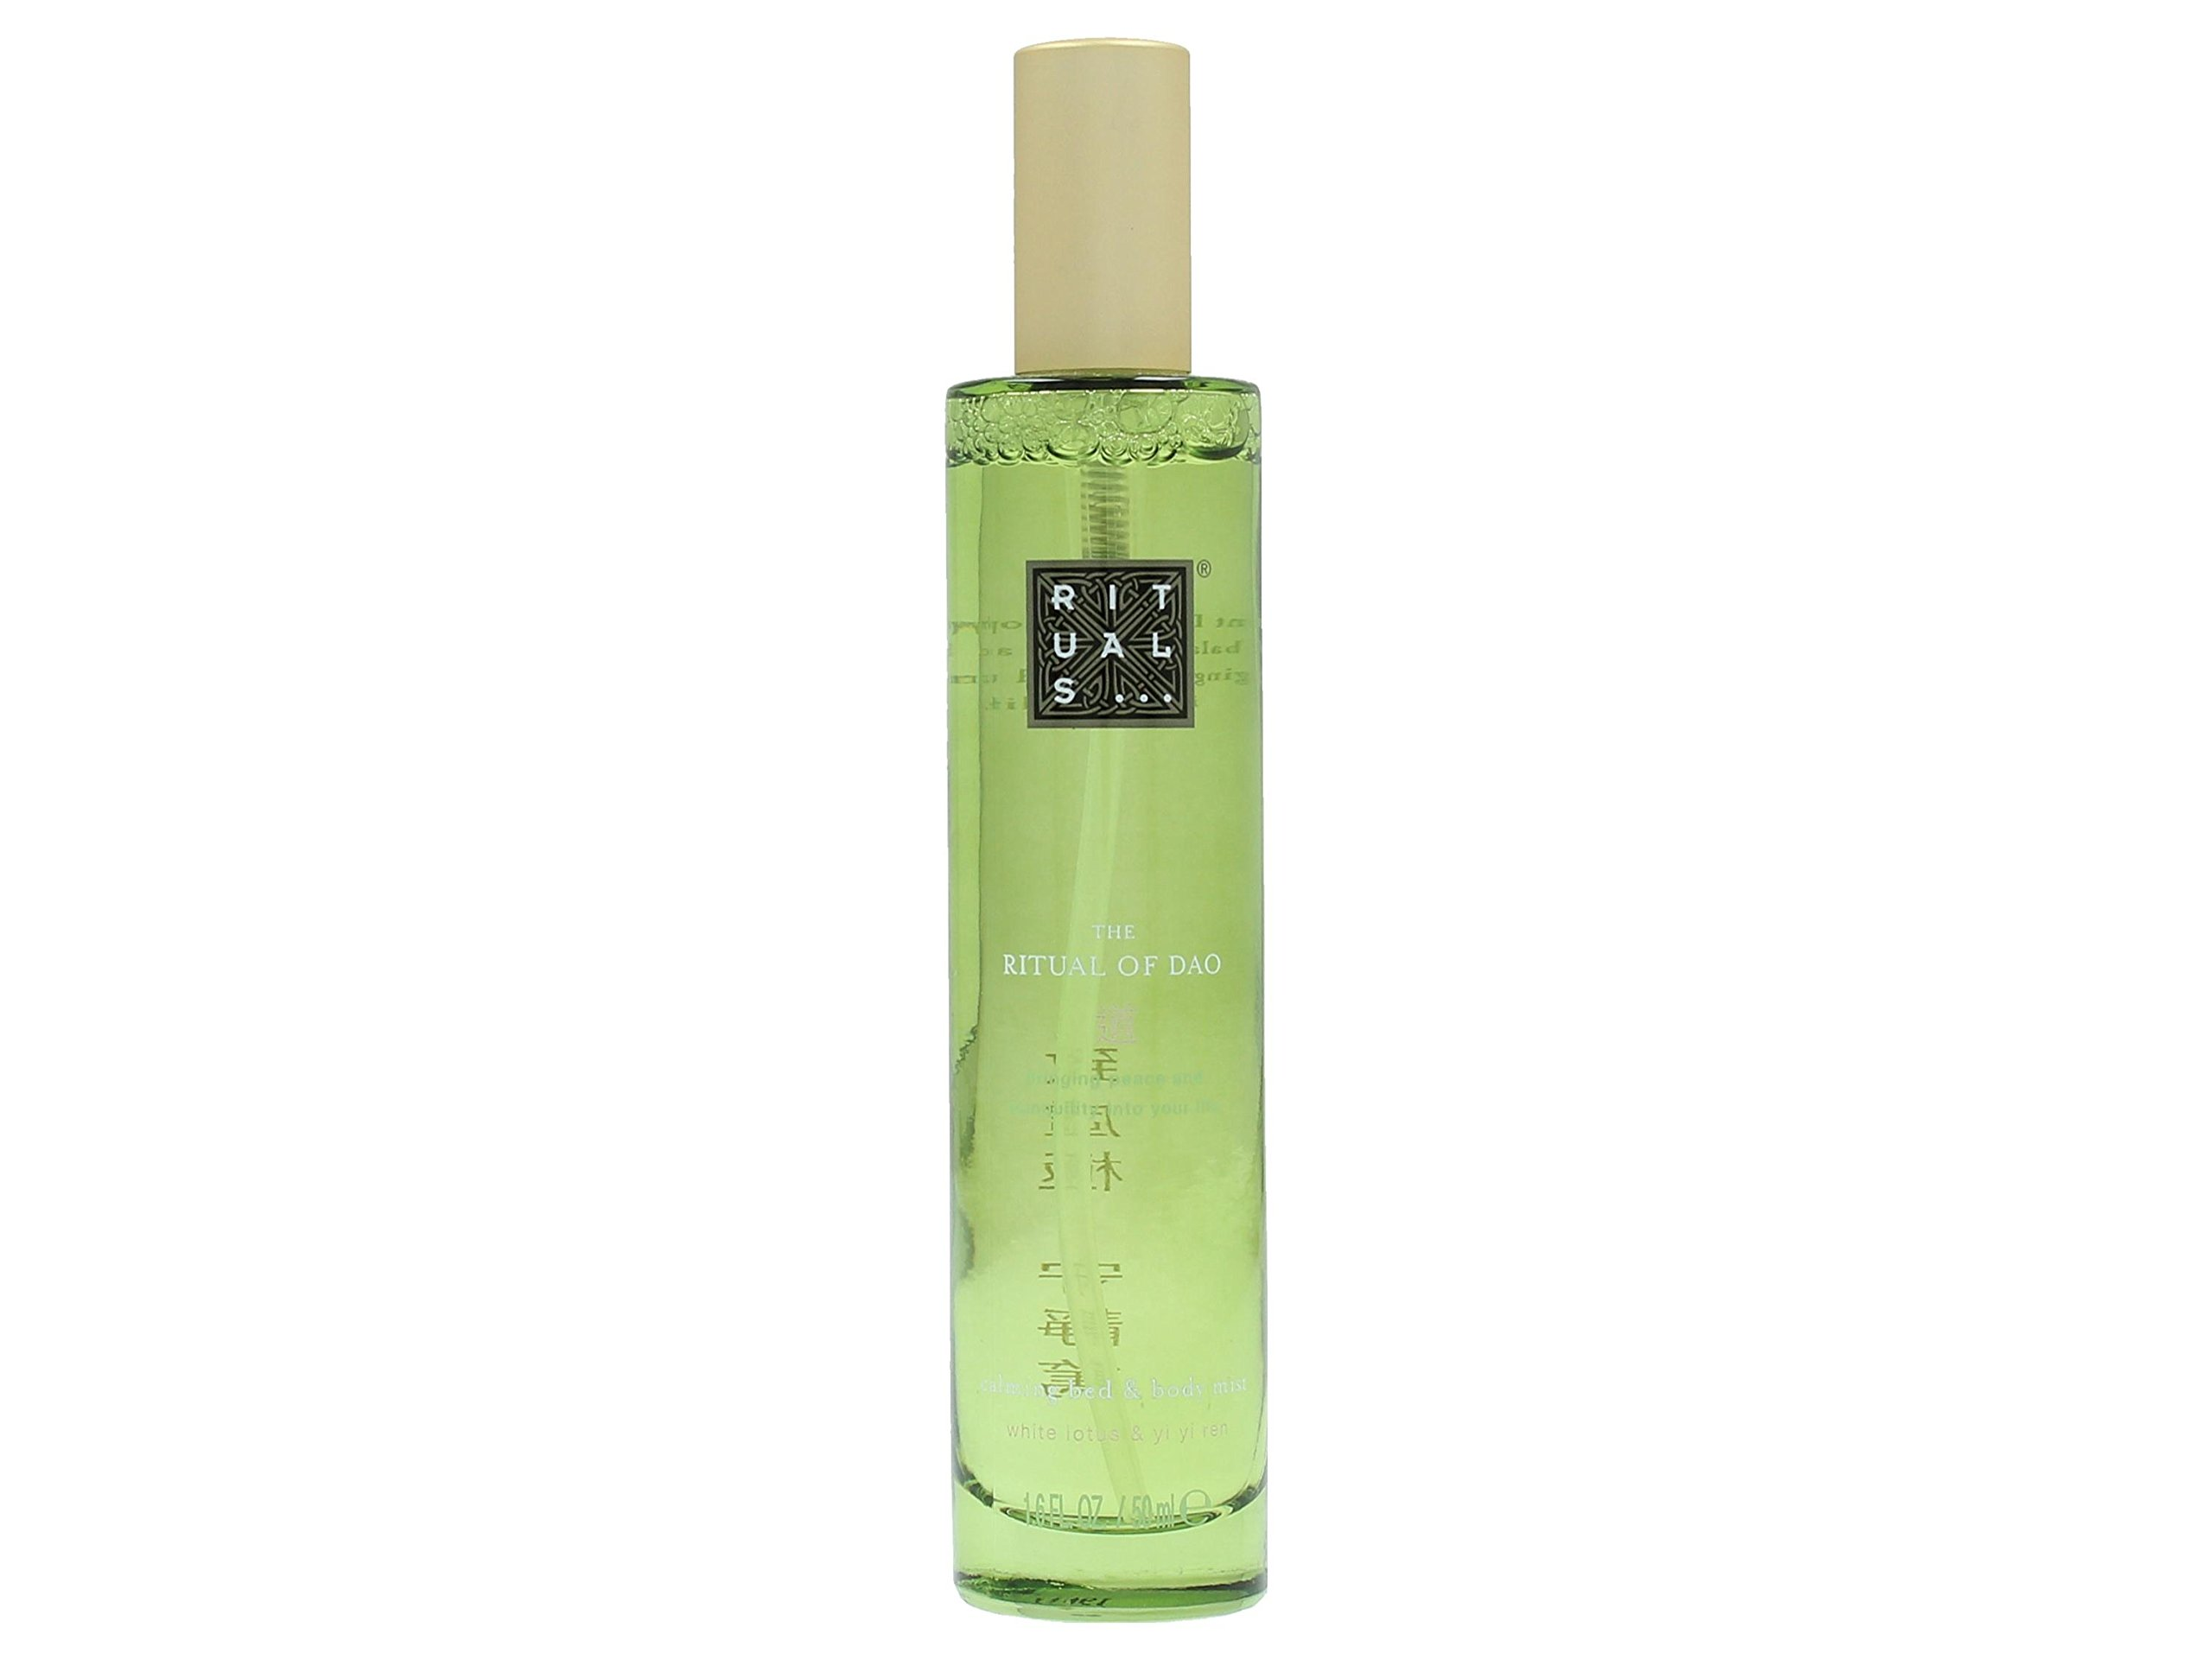 Rituals The Ritual of DAO Bed and Body Mist, 0.41 lb.